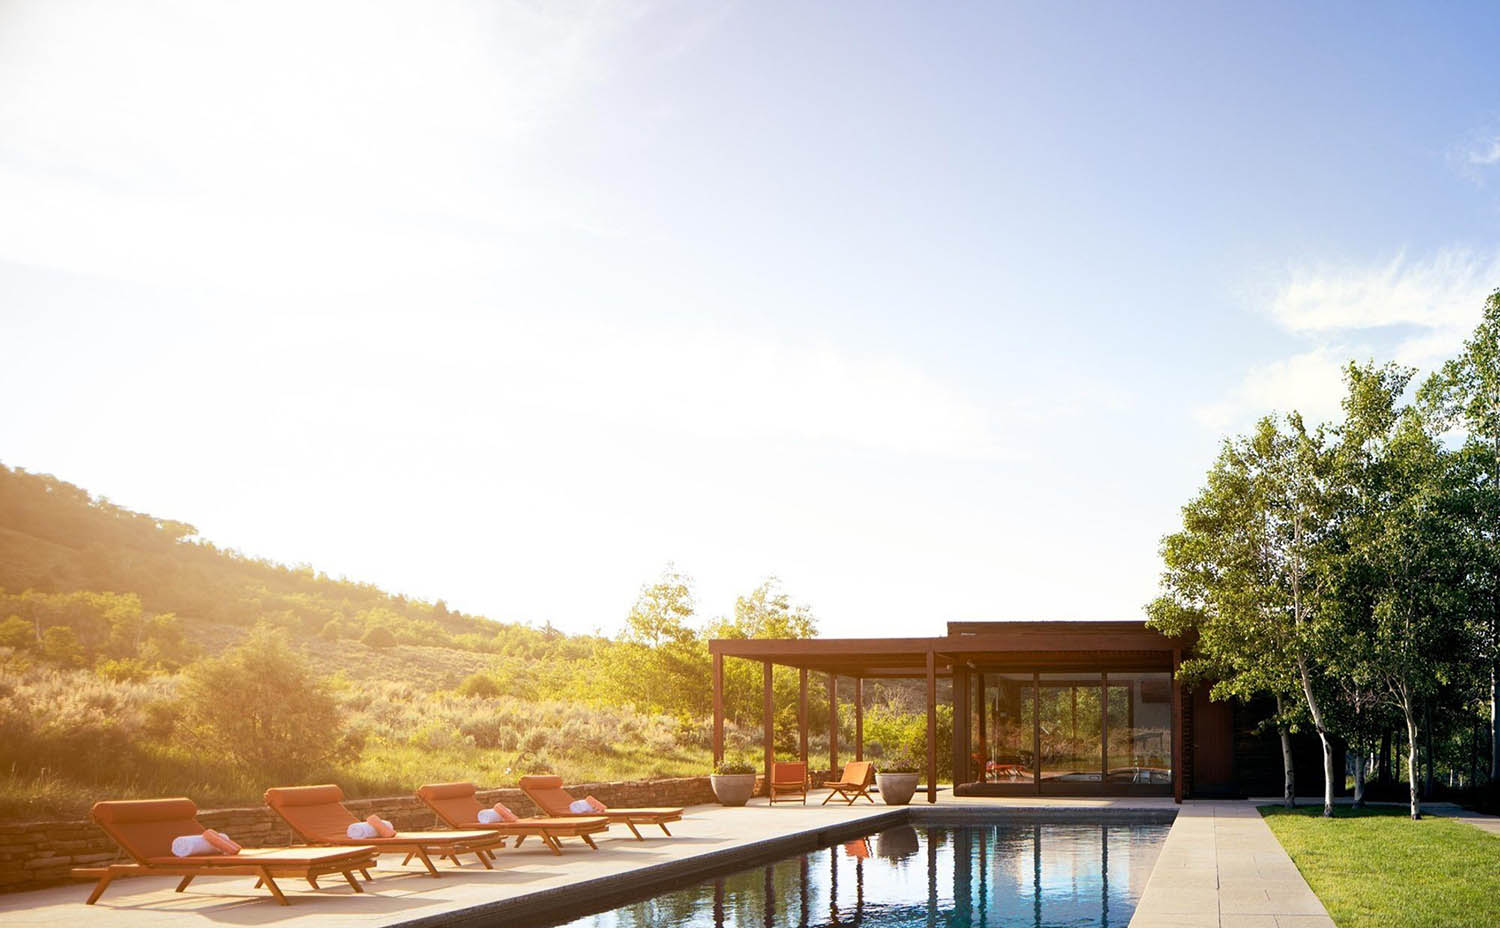 Beautiful modern pool house design in the country at sunrise. Huge floor to ceiling windows. Metal and wood siding. In ground rectangle pool. Poolside seating. Stone retaining walls. Flat roof.